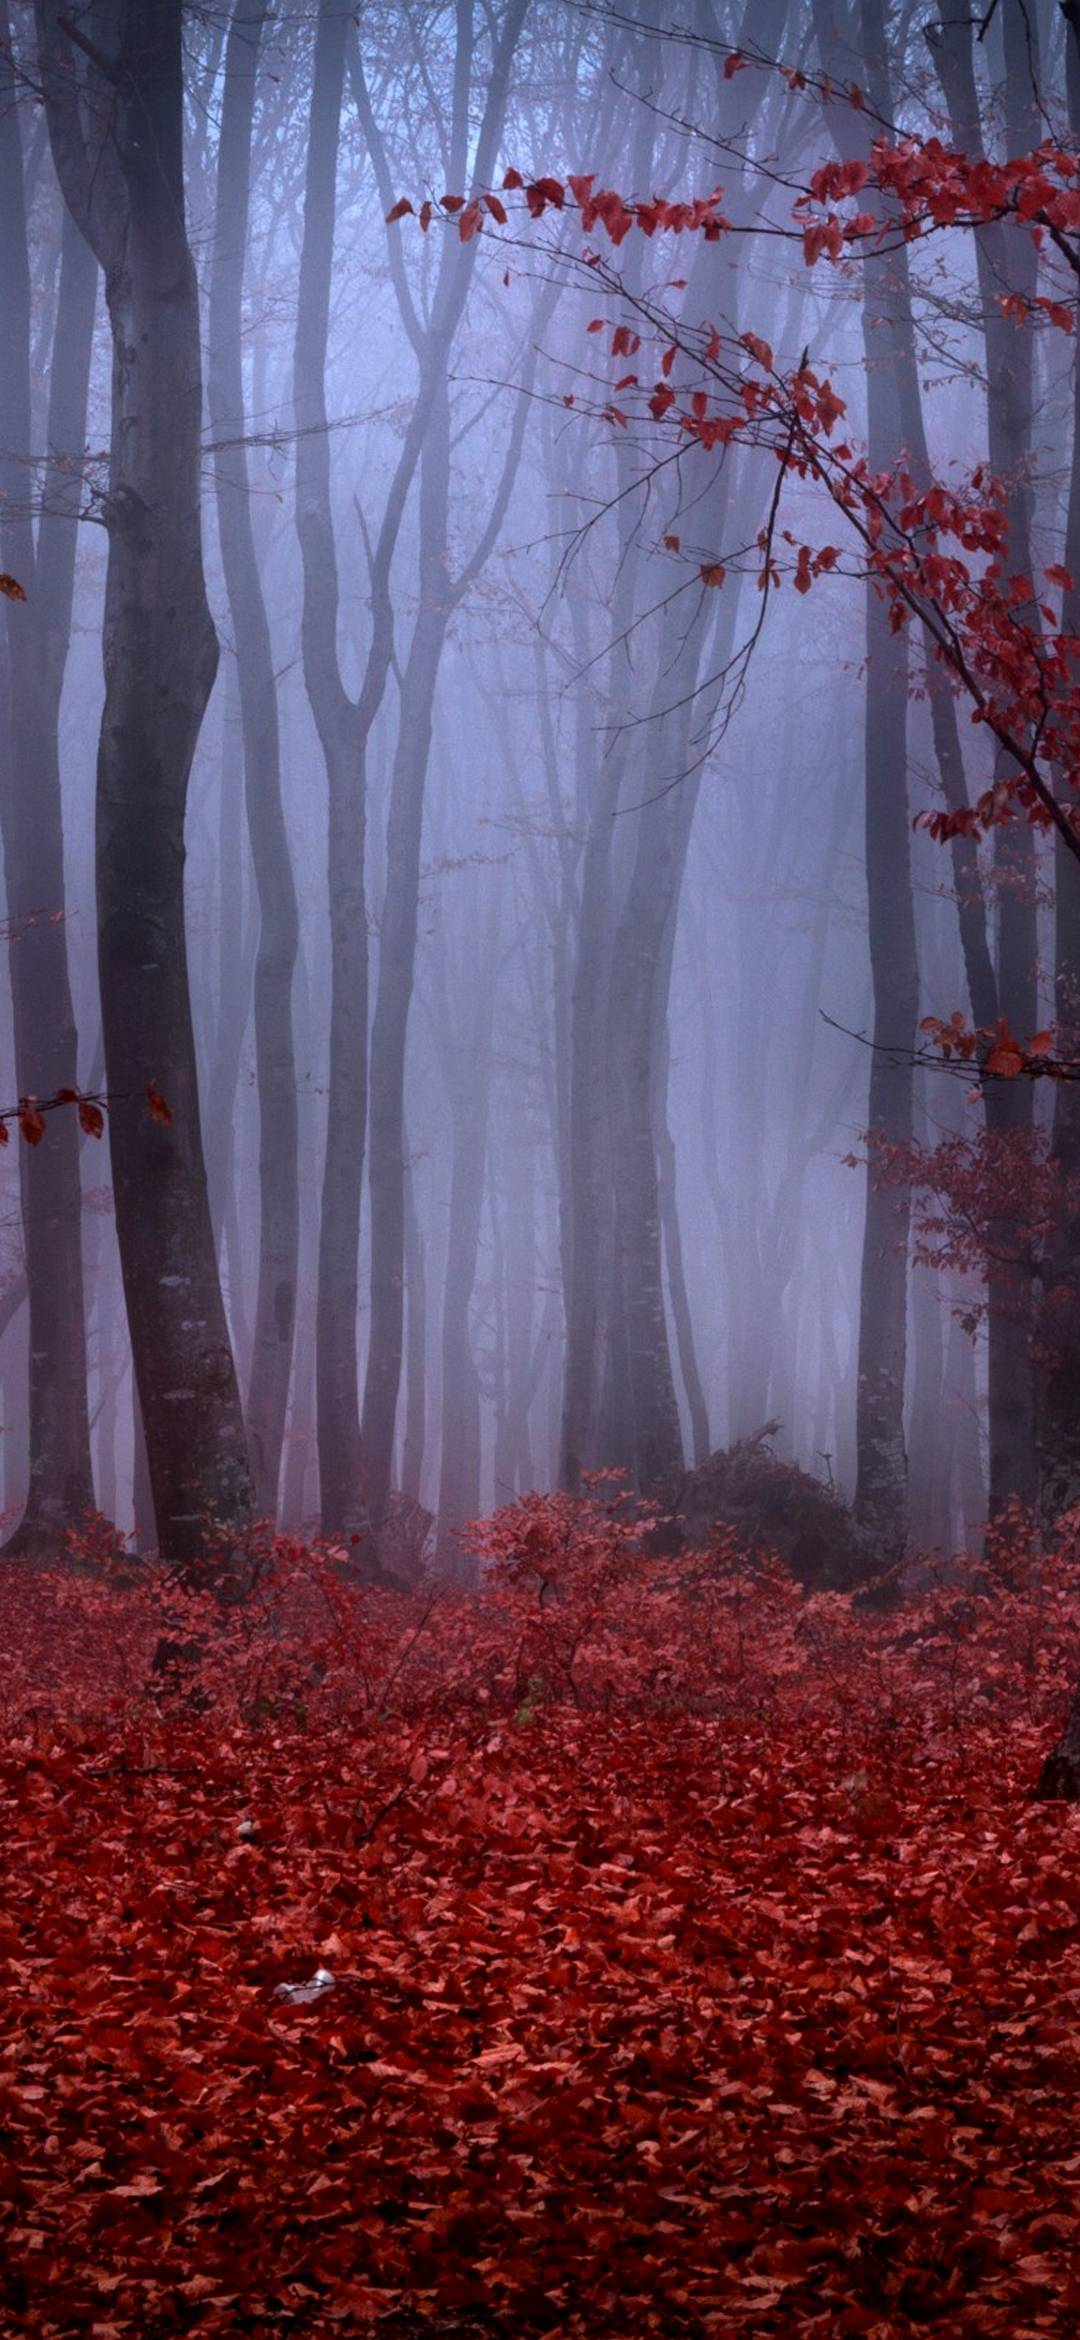 Islamic 3d Wallpapers Download Forest Fog Autumn Trees Branches 1080x2340